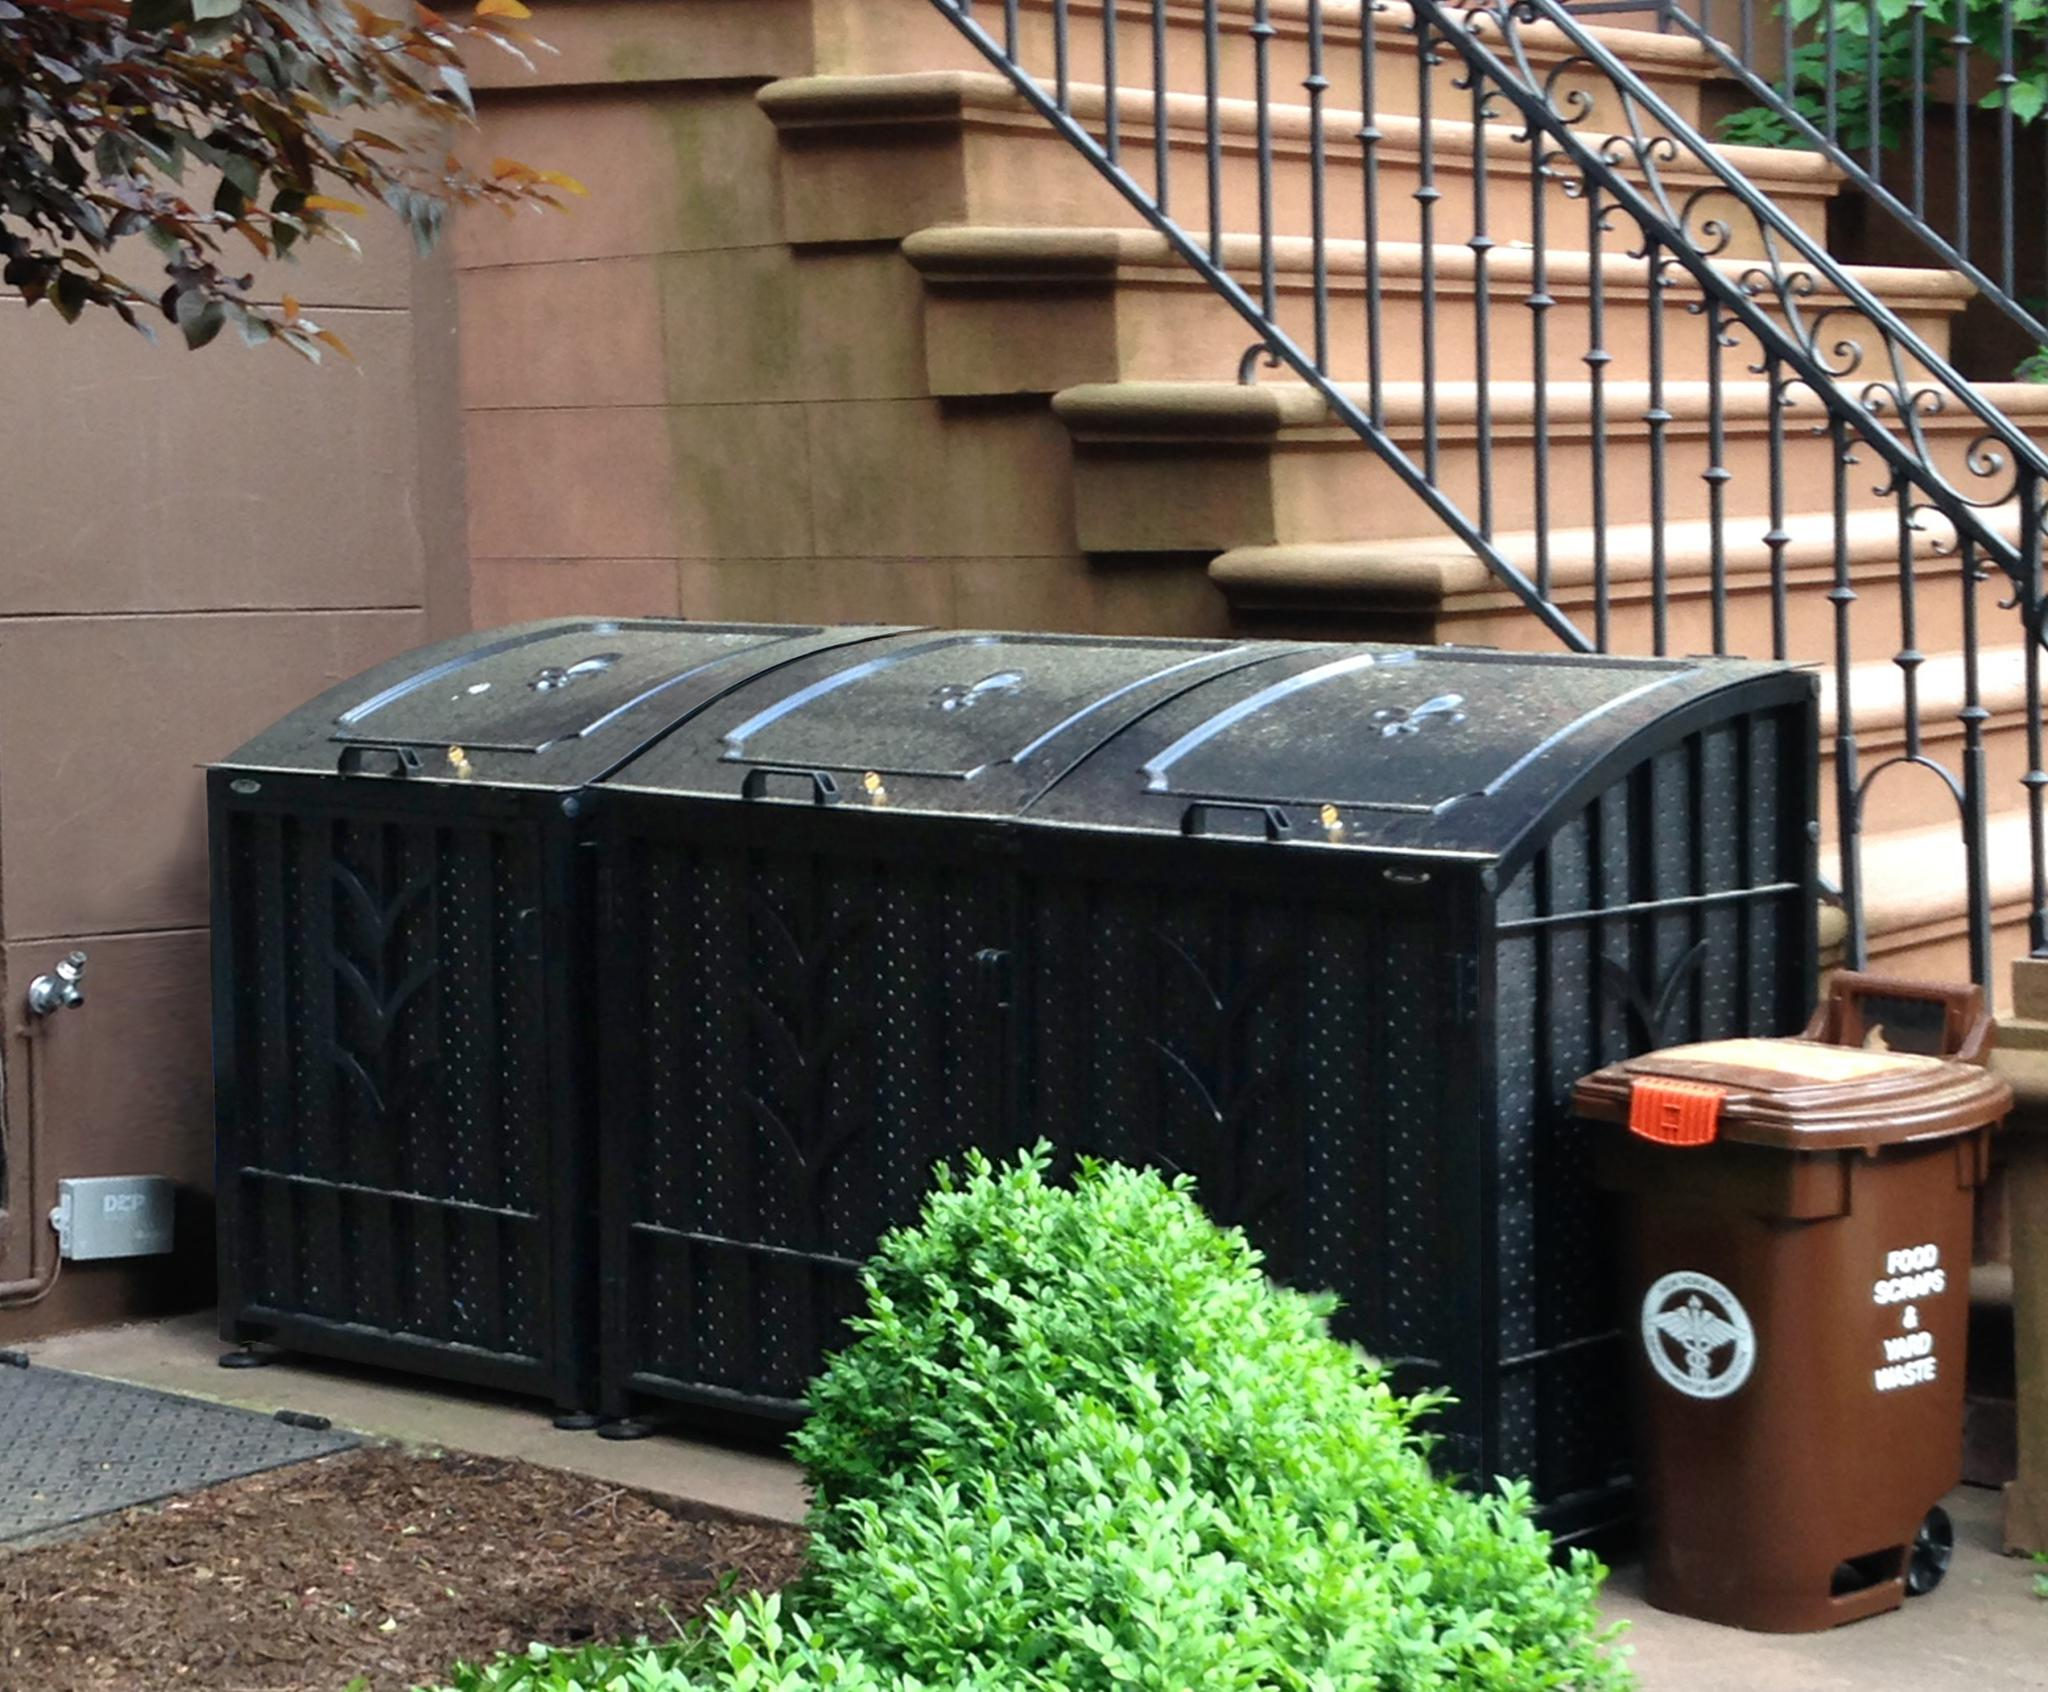 Outdoor Garbage Bins: Ideas for Urban Front Yards | Brownstoner